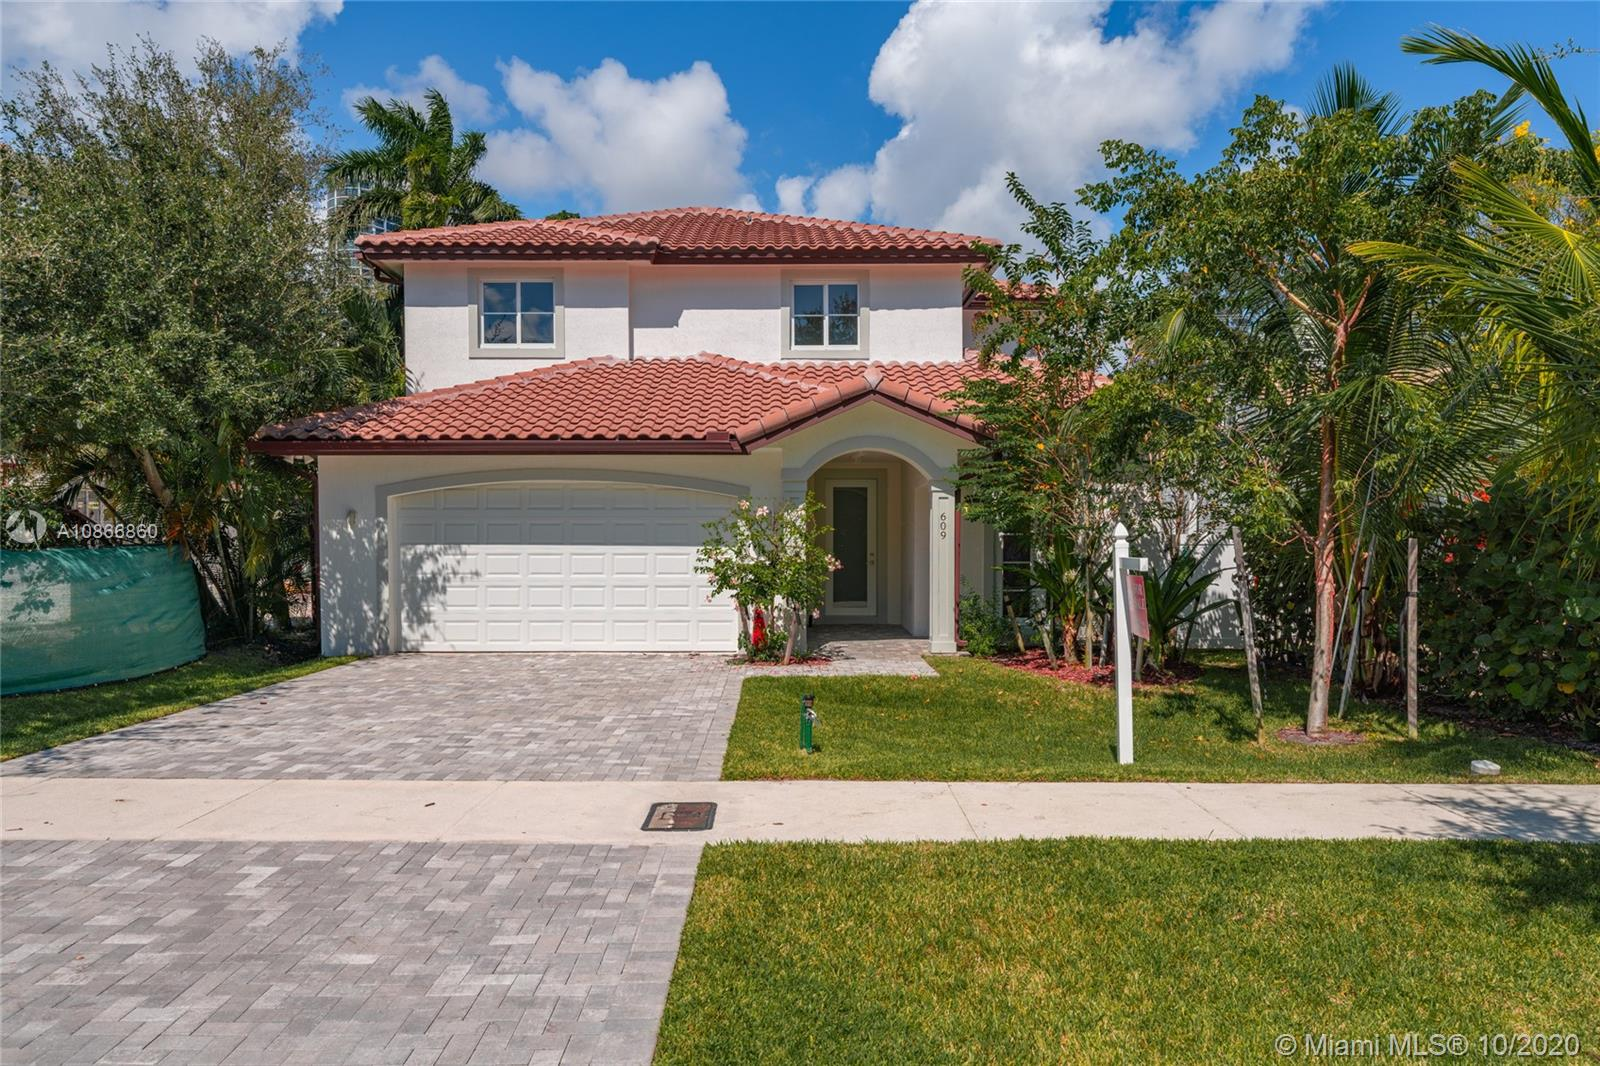 NEWLY BUILT 2-STORY CUSTOM HOME WITH THE POOL IN RIO VISTA AREA!!**5BED/5BATH**4,569 SQFT-Total Main Residence**LOCATED in one of the BEST neighborhoods in FORT LAUDERDALE**TRANSITIONAL-MODERN architecture outside and modern finishes inside**EXCELLENT combination of porcelain tile and wide plank wood flooring**All Rooms are LARGE**MASTER has a big patio overlooking the pool area**CONTEMPORARY finishes include EURO STYLE cabinetry w/quartz counters*** This HOUSE is a MUST SEE!**DO NOT MISS YOUR CHANCE TO OWN NEWLY BUILT HOME IN RIO VISTA AREA!!